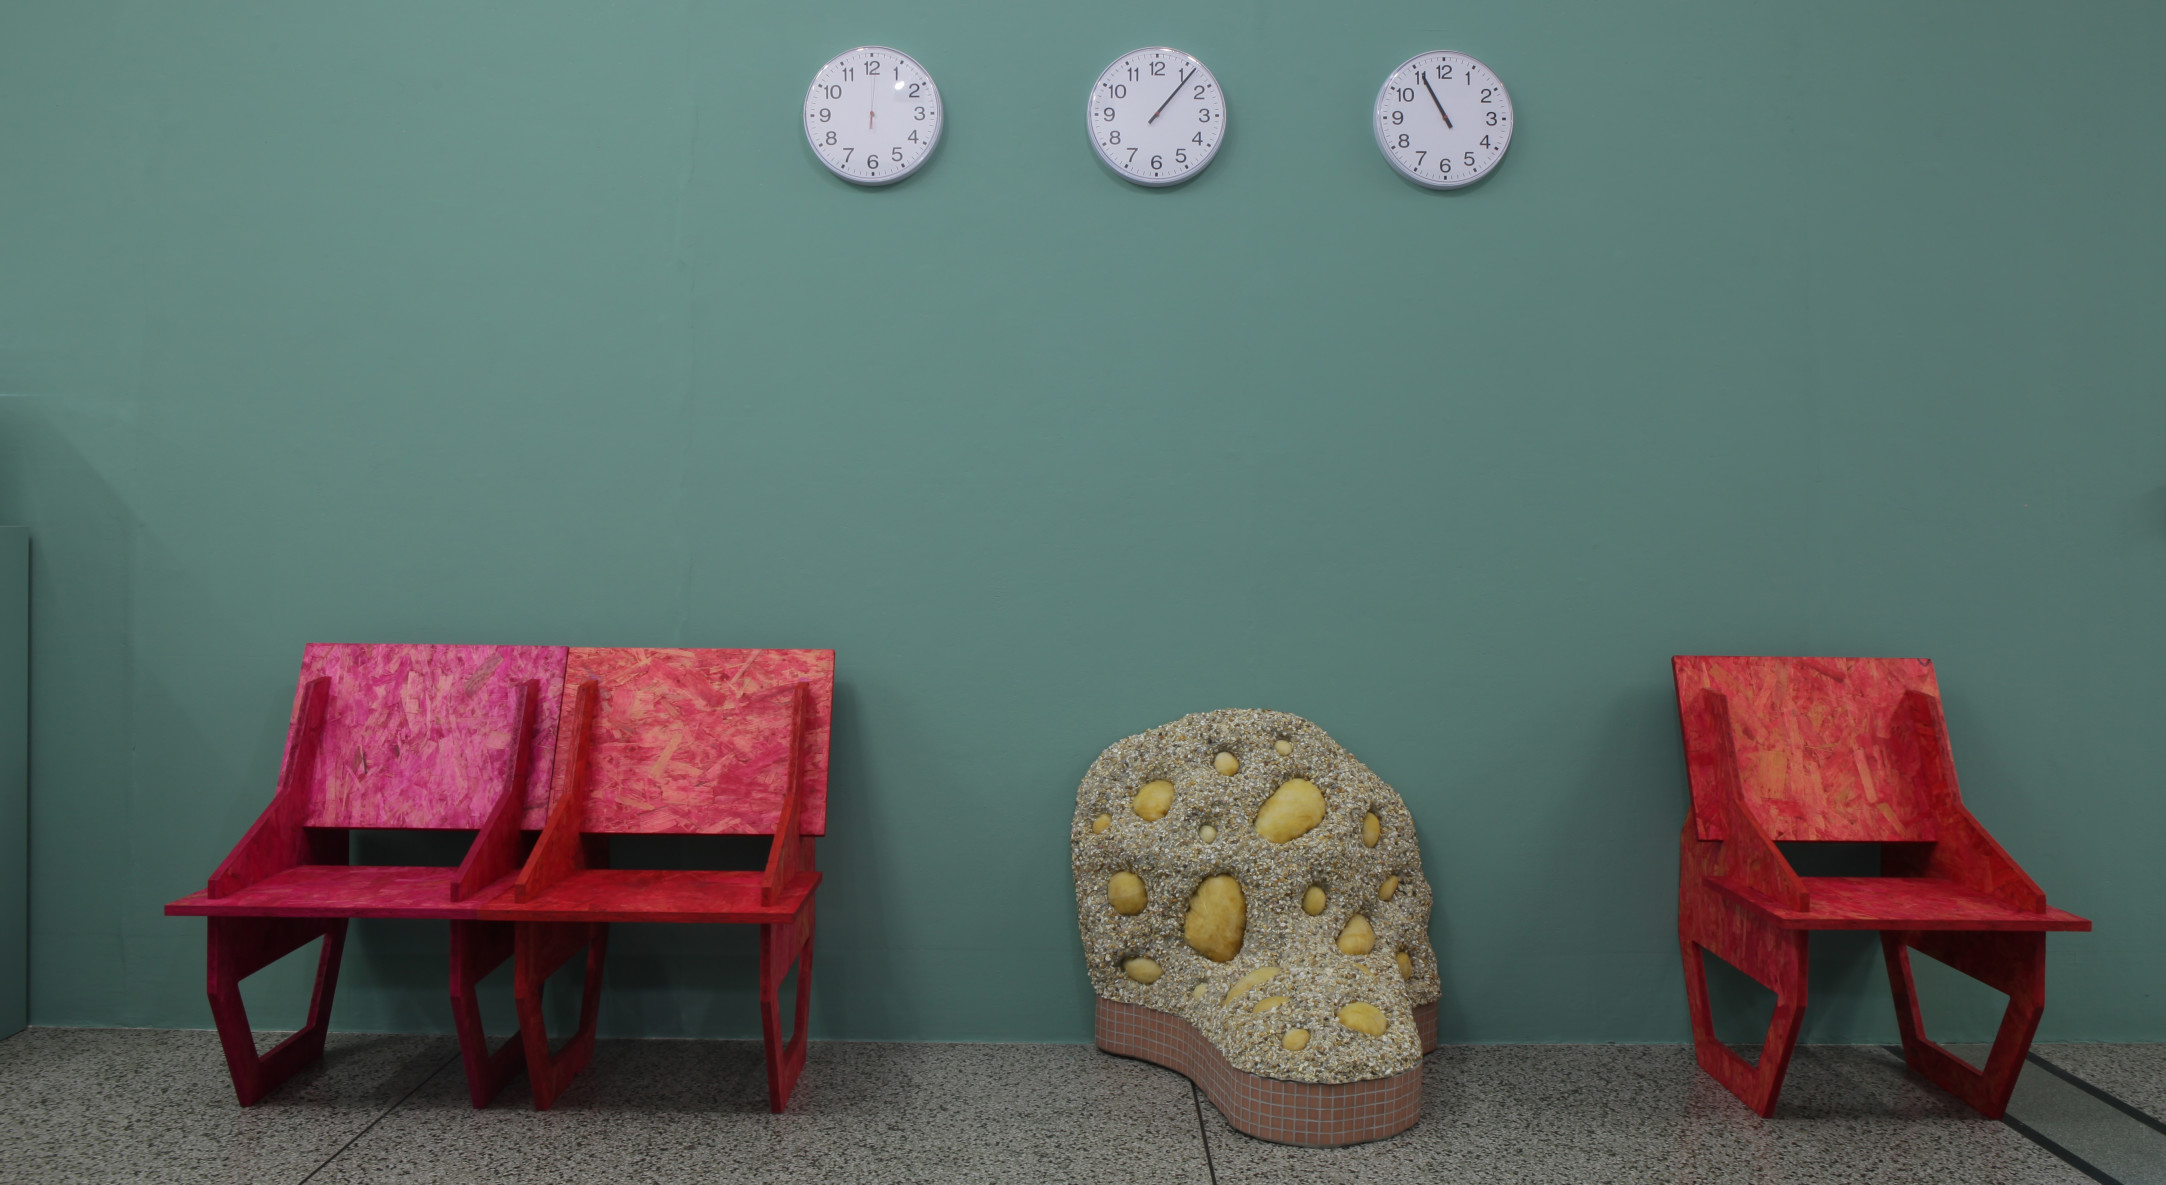 Installation view of Rachael Champion, The Waiting Room at Wimbledon Space